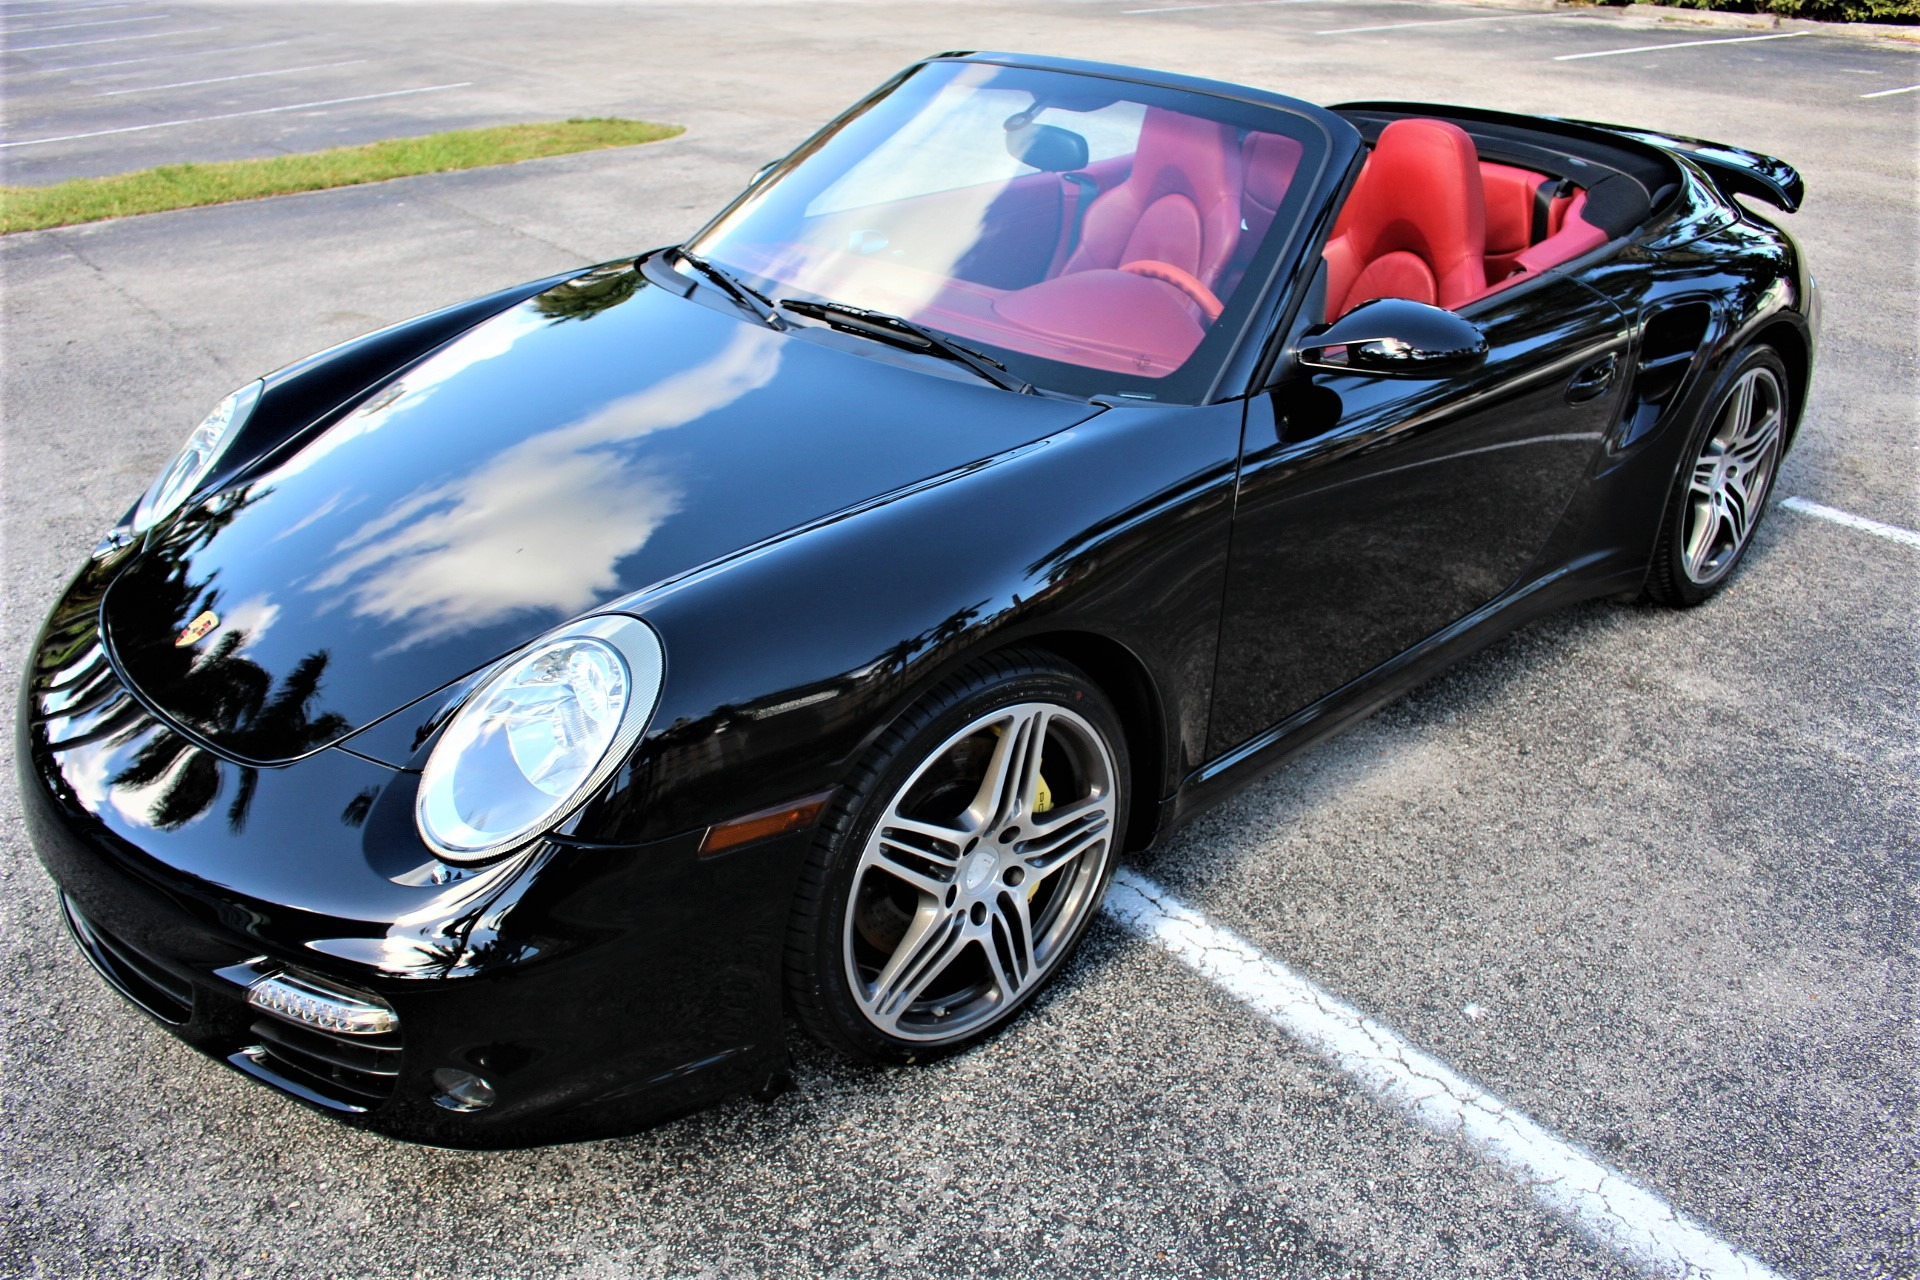 Used 2008 Porsche 911 Turbo for sale Sold at The Gables Sports Cars in Miami FL 33146 2